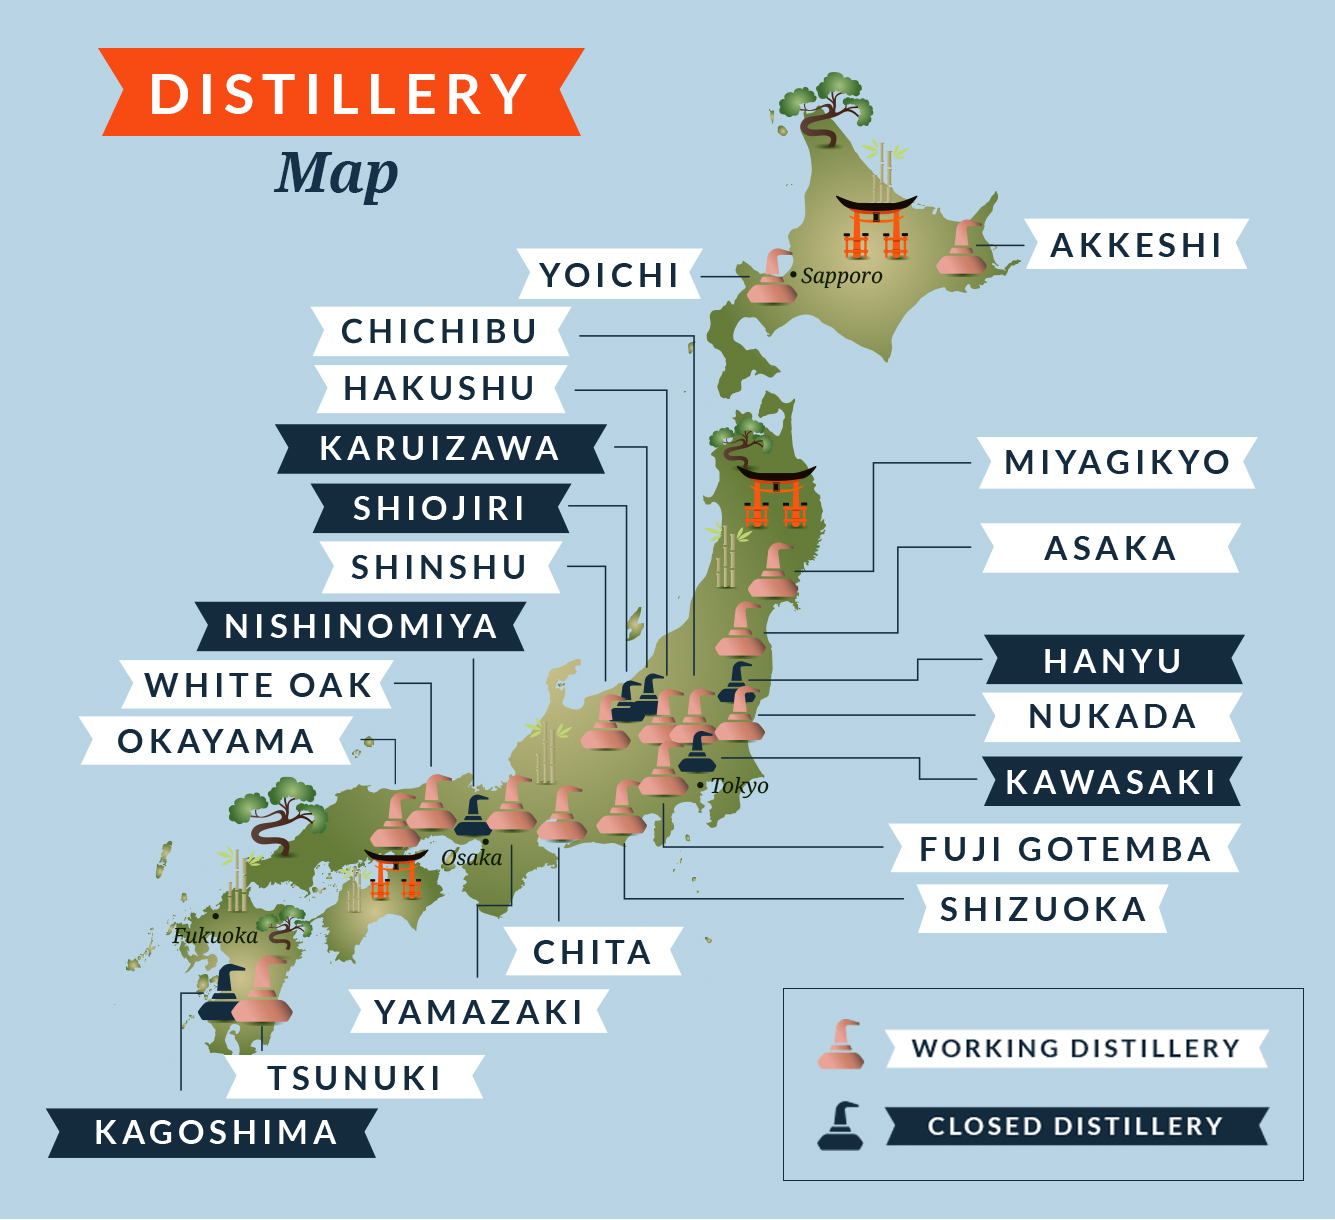 The whisky distilleries of Japan